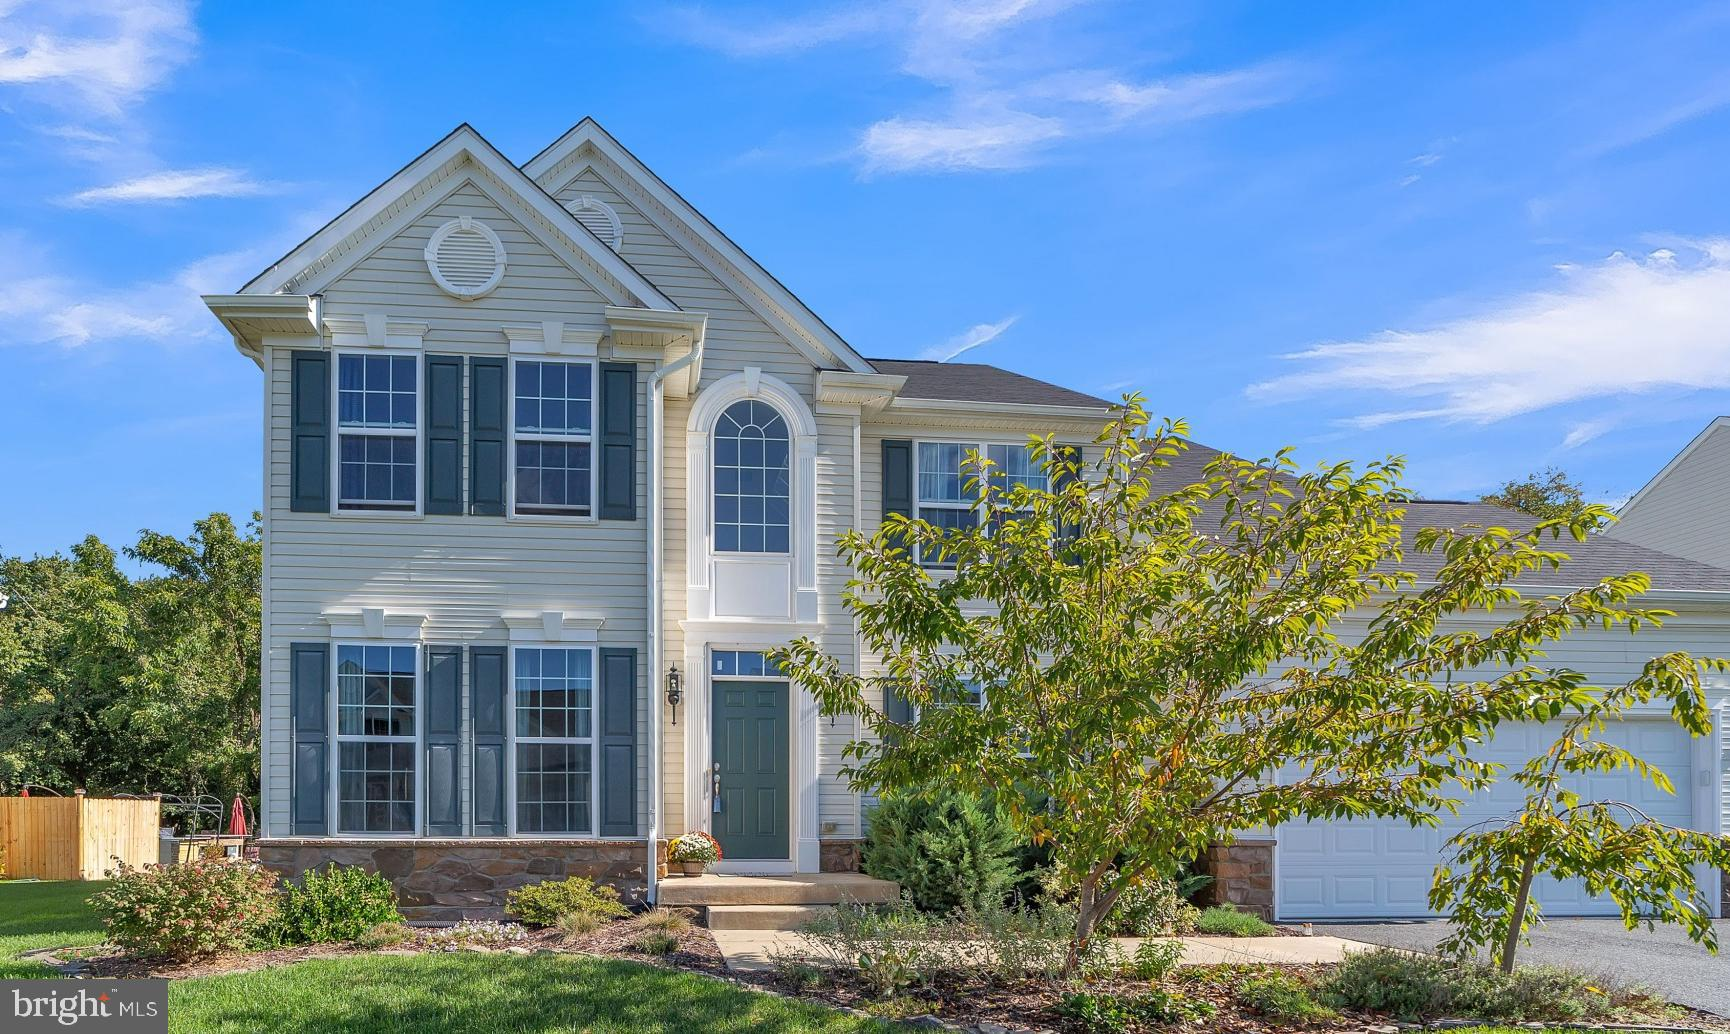 """A """"Commuter's Delight"""" at less than 3-miles from Rt 13 and only 7-miles to the Rt 1 & Rt 299 interchange!  Upon arrival at this 5-year-young Handler-built, two-story colonial, notice the two-car garage and mature landscape.  Inside, the gleaming hardwoods in the Foyer make a great first impression.  The living room features custom paint, large windows and crown moulding.  Directly across the Foyer is the Dining Room where the custom paint, crown moulding and large windows continue.  Returning to the foyer we enter the open-concept Great Room across the entire rear of the home.  Notice the gas fireplace and many large windows (plus a sliding door) flooding this space with light.  In the eat-in Kitchen, stainless appliances, espresso cabinets and tasteful granite counters will satisfy any chef!  A sunroom-style bump-out provides a large area for casual dining.  Beside the kitchen, find the main-level powder room and laundry room along with access to the garage. Return to the front hall and make your way up to the Bedroom level.   Once upstairs, find the Owner's Suite.  Here you will be pleasantly surprised by dual walk-in closets and a luxurious full bath ...  with double-sinks, tile flooring, a soaking tub and a beautiful tile shower.  Three more bedrooms and a hall bath wrap-up our tour of the second floor.  Take the stairs down to the full, unfinished basement with rough-in plumbing for a full bath.  Use your imagination to customize this level to the entertainment / hobby / work-from-home space of your dreams.  Return to the Great Room and step onto the enormous rear deck (approximately 18' x 16') with 6-person Caldera Hot Tub.  An unexpected amount of space for outdoor entertaining and summer barbecues awaits you here.  Take a moment to take-in the tranquil views of the tree-lined open-space behind ... perfect for nature lovers.  Welcome Home!"""